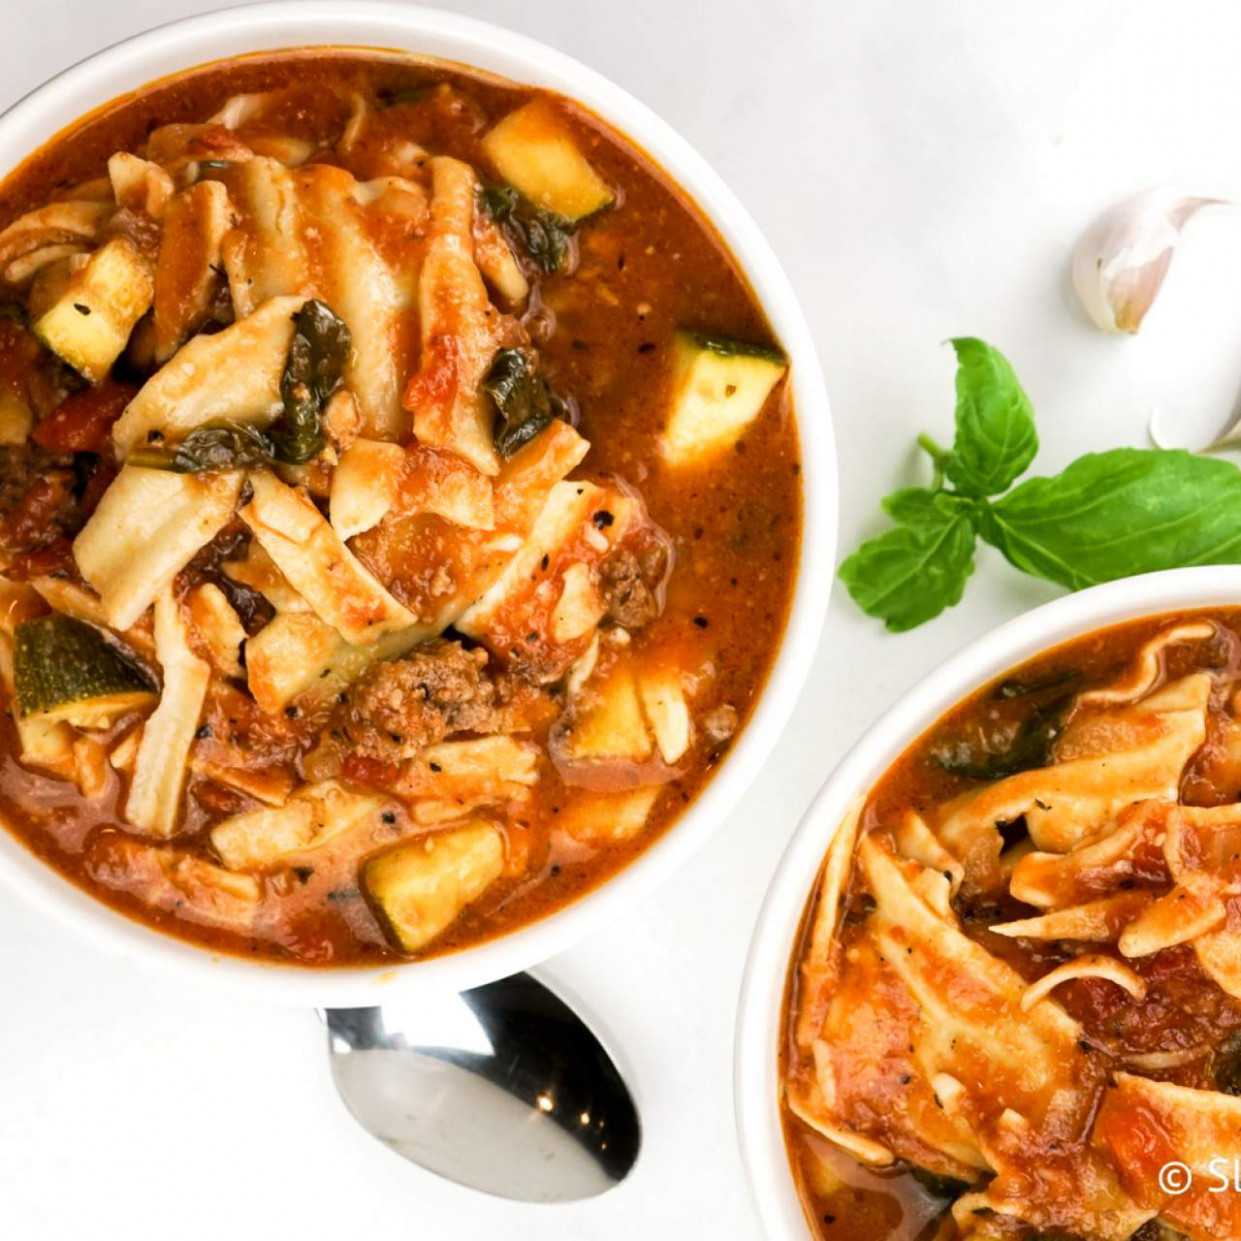 Vegetarian Slow Cooker Lasagna Soup - recipes for slow cooker vegetarian